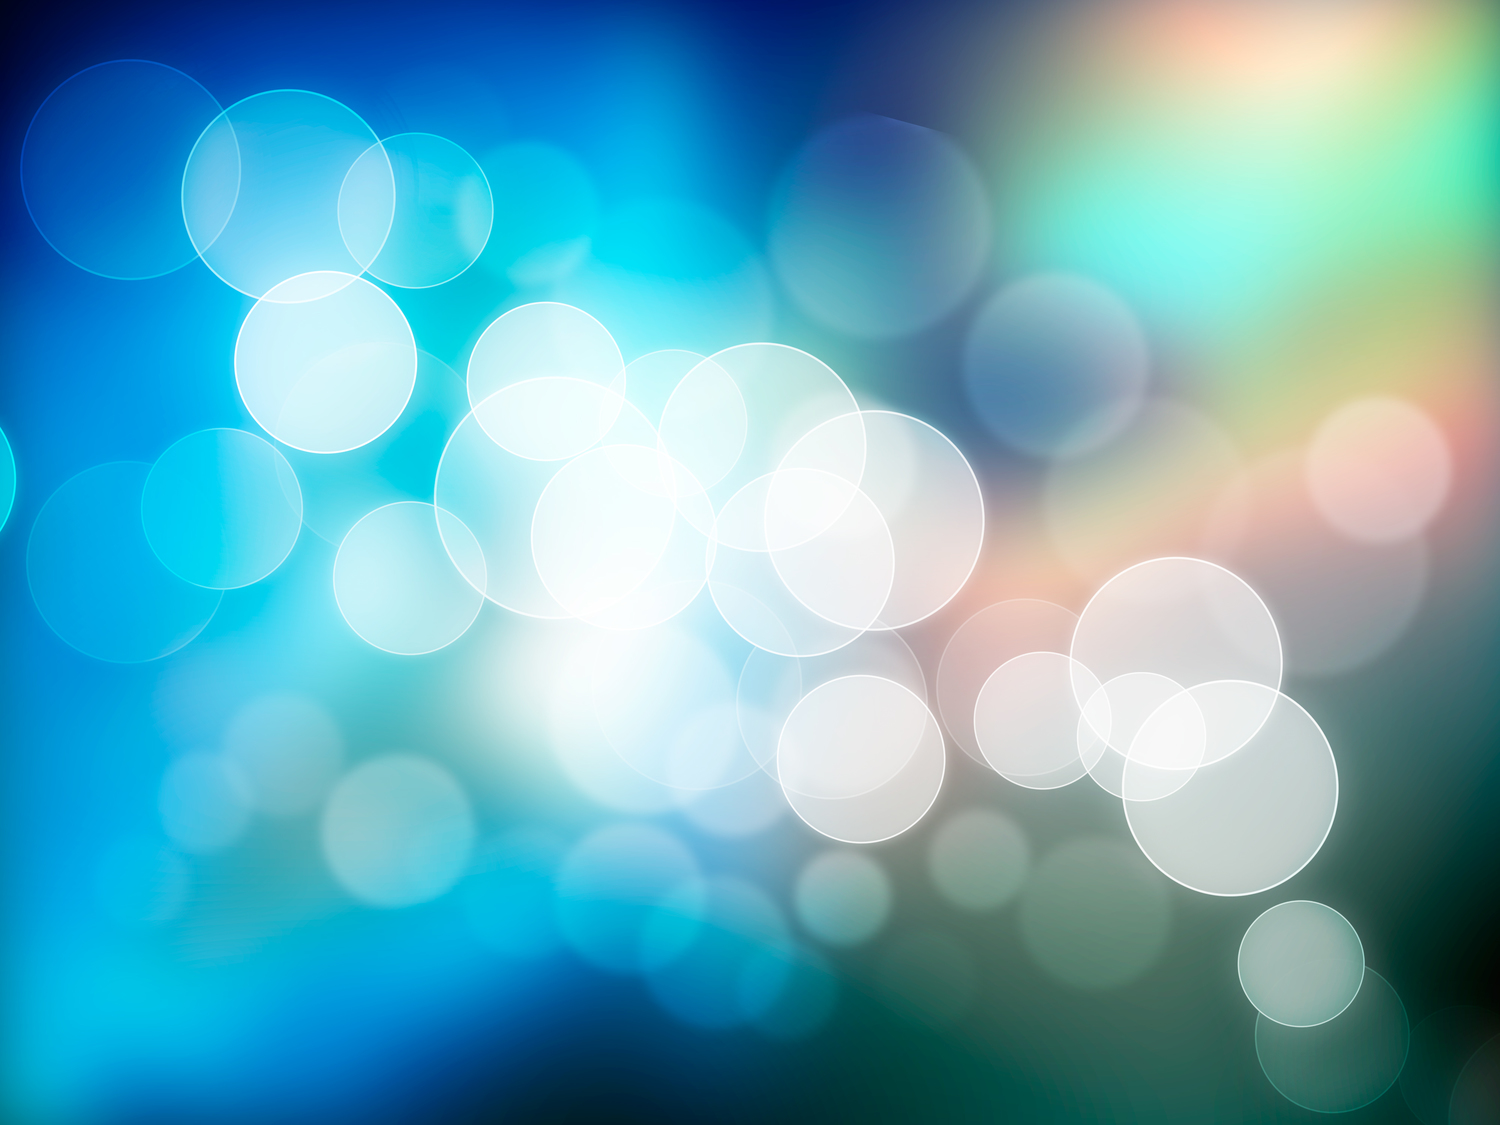 Angels And Colors: Meaning And Symbolism Of Angelic Light Colors